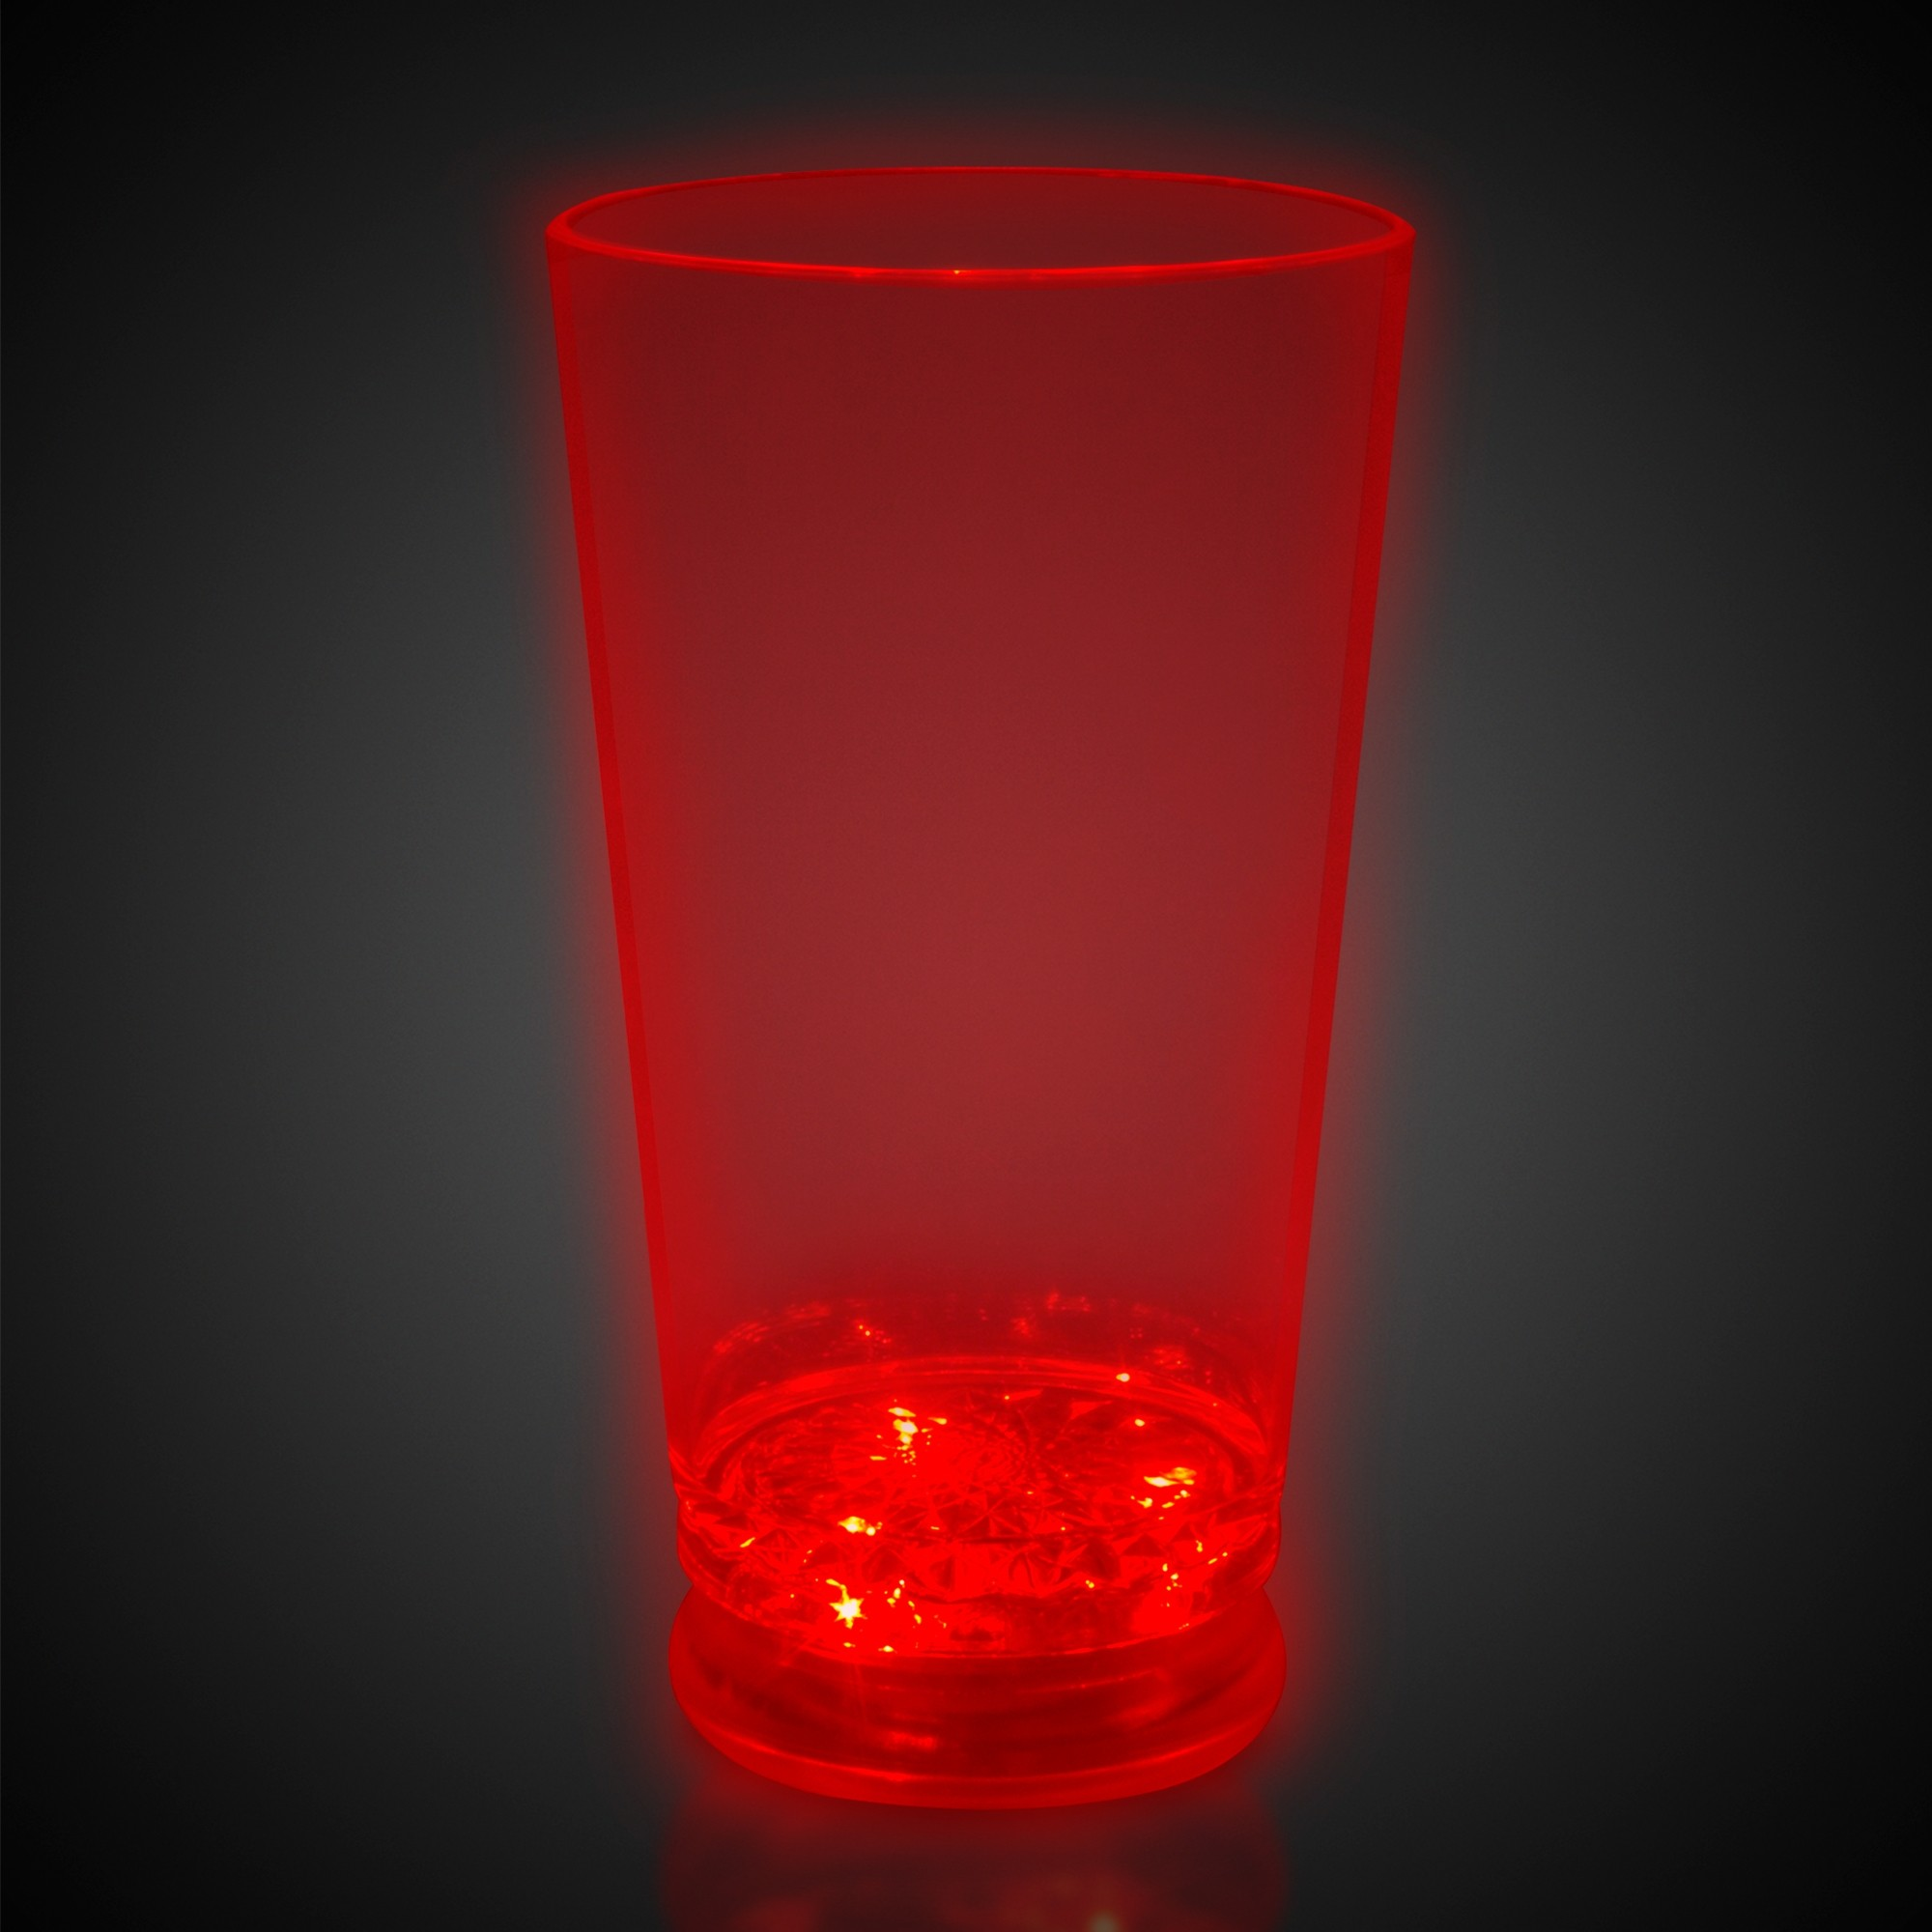 LIGHT-UP PINT GLASS WRED BASE